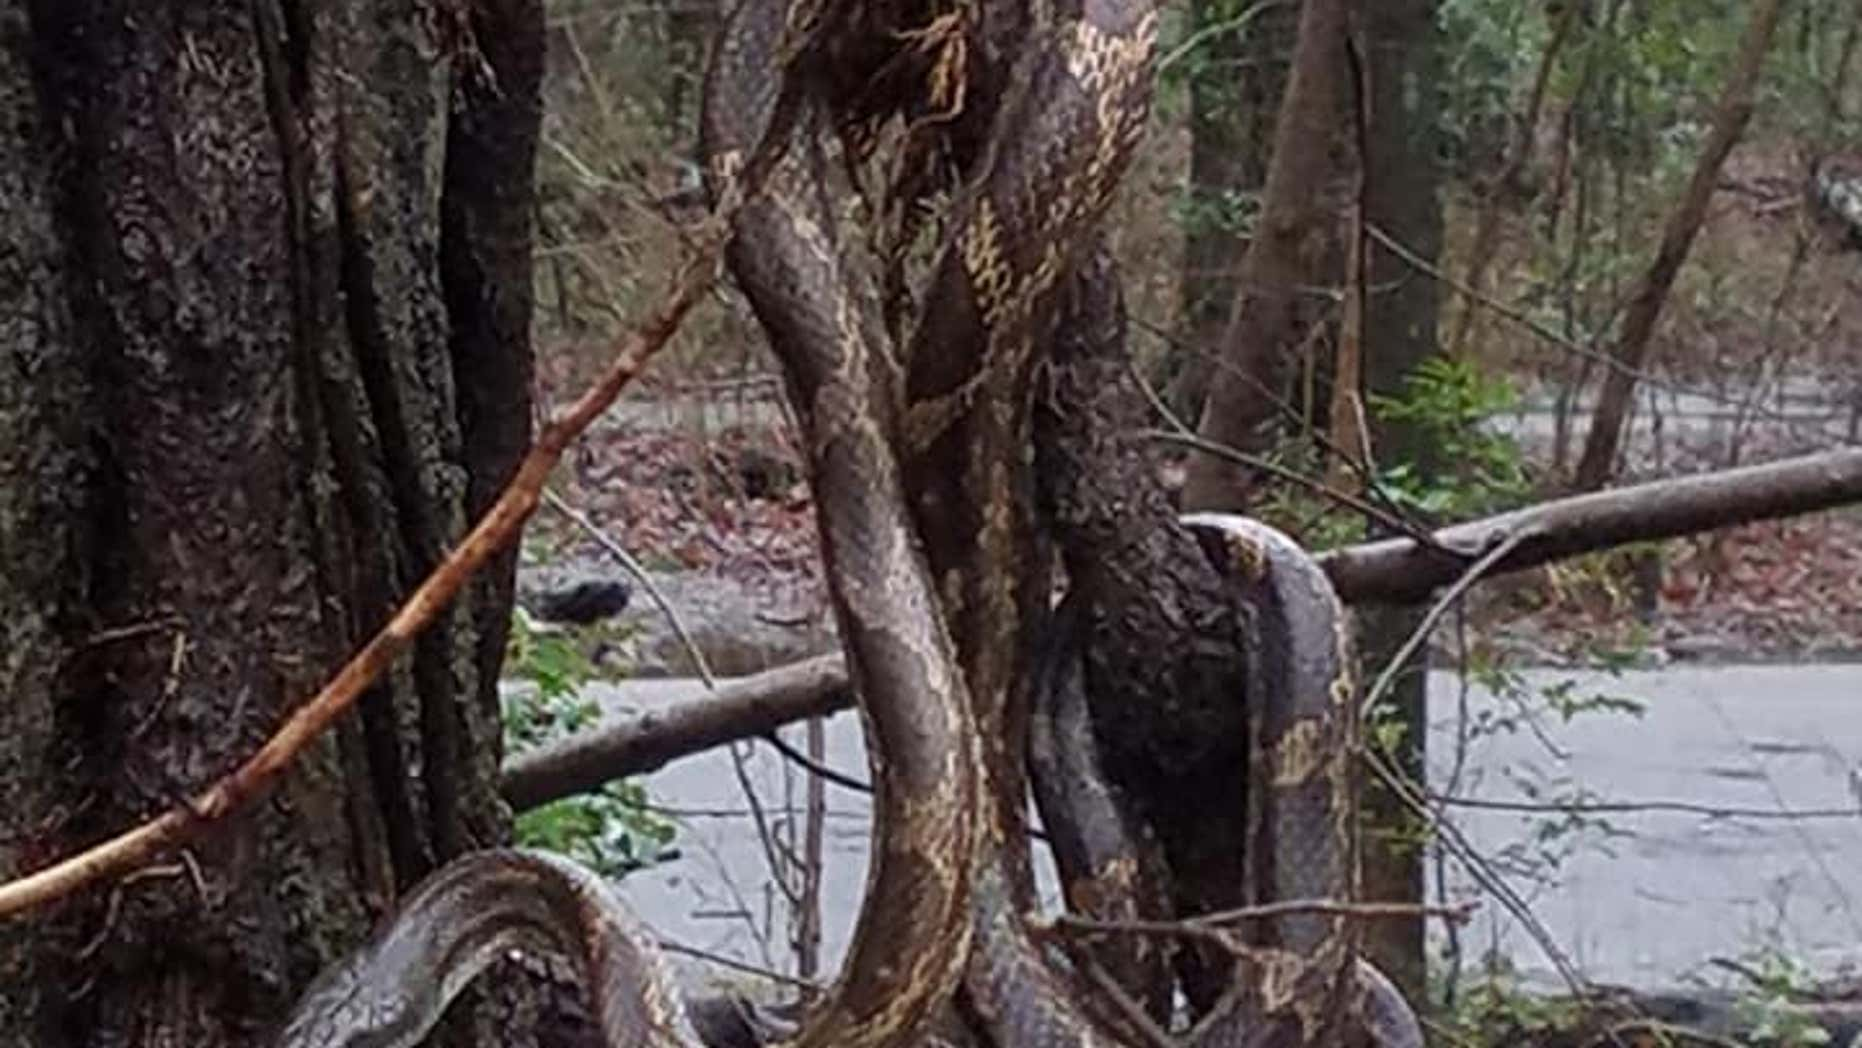 Steve Ballou said the snake appears larger in the photo than it really was. (Photo courtesy of Steve Ballou)